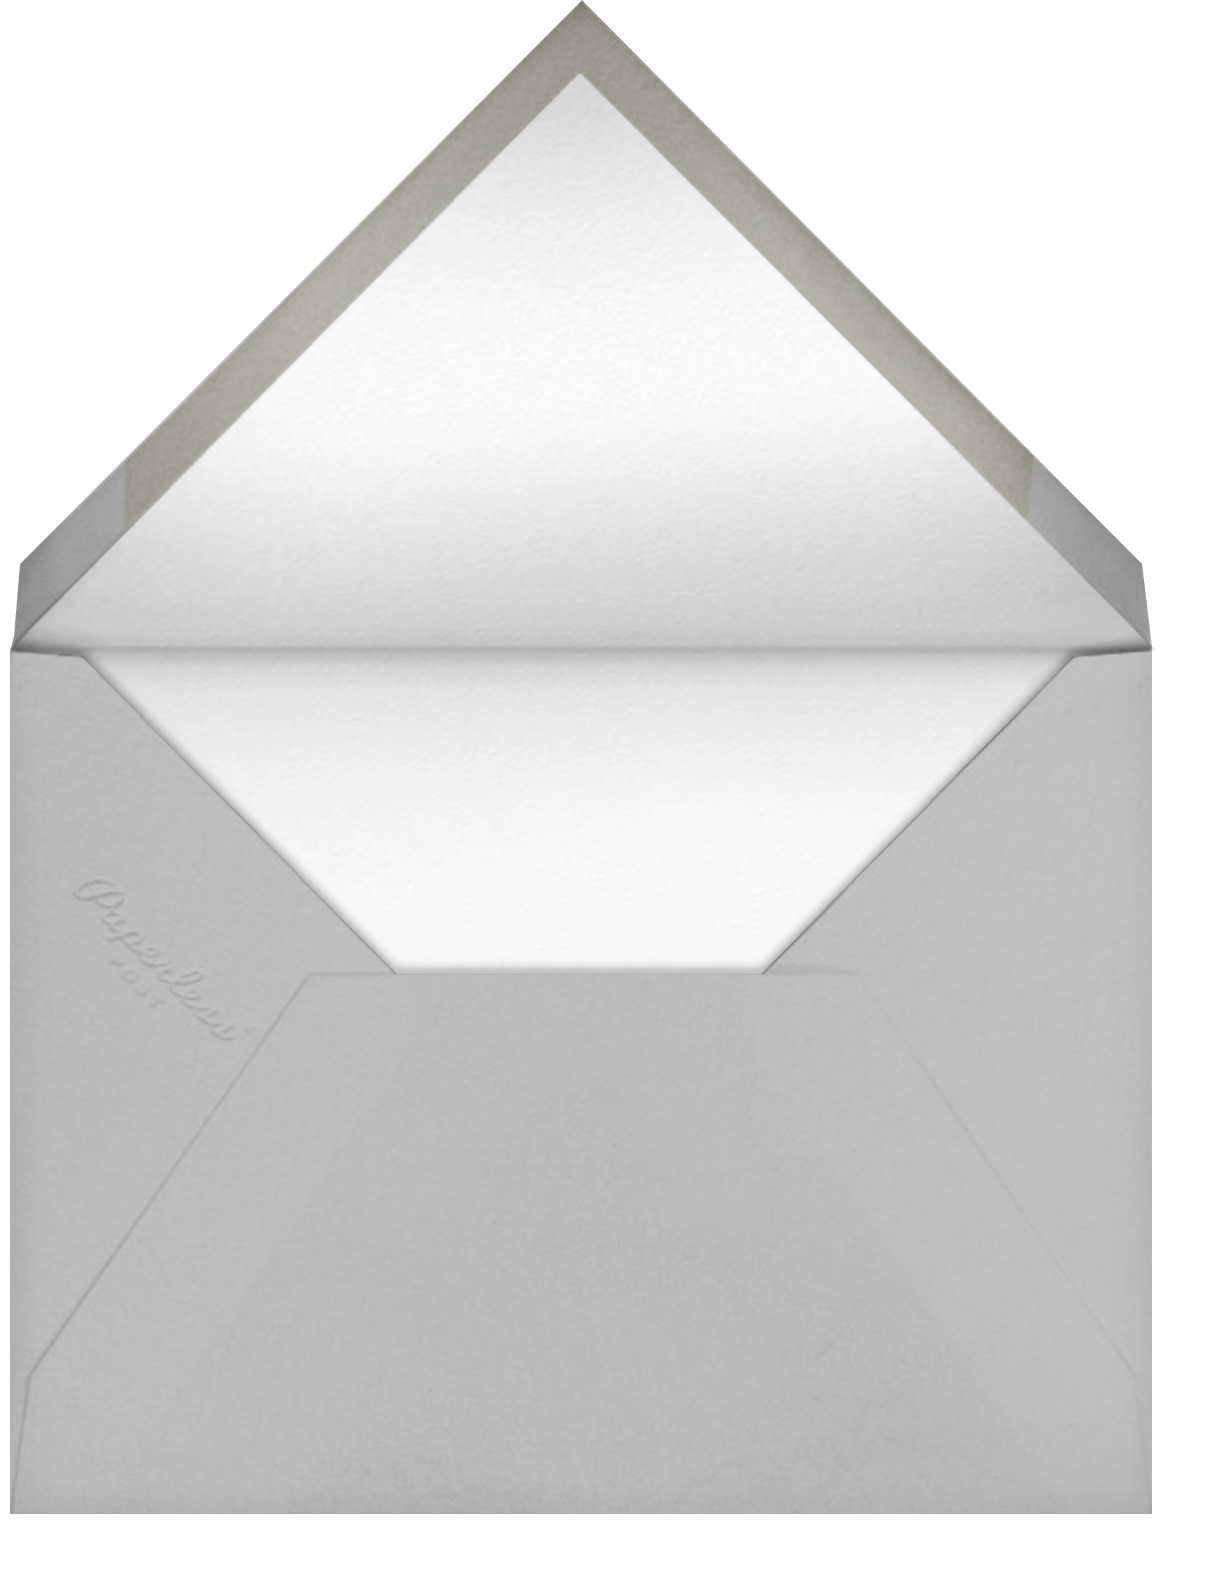 Lina - Winter Gray - Paperless Post - Engagement party - envelope back